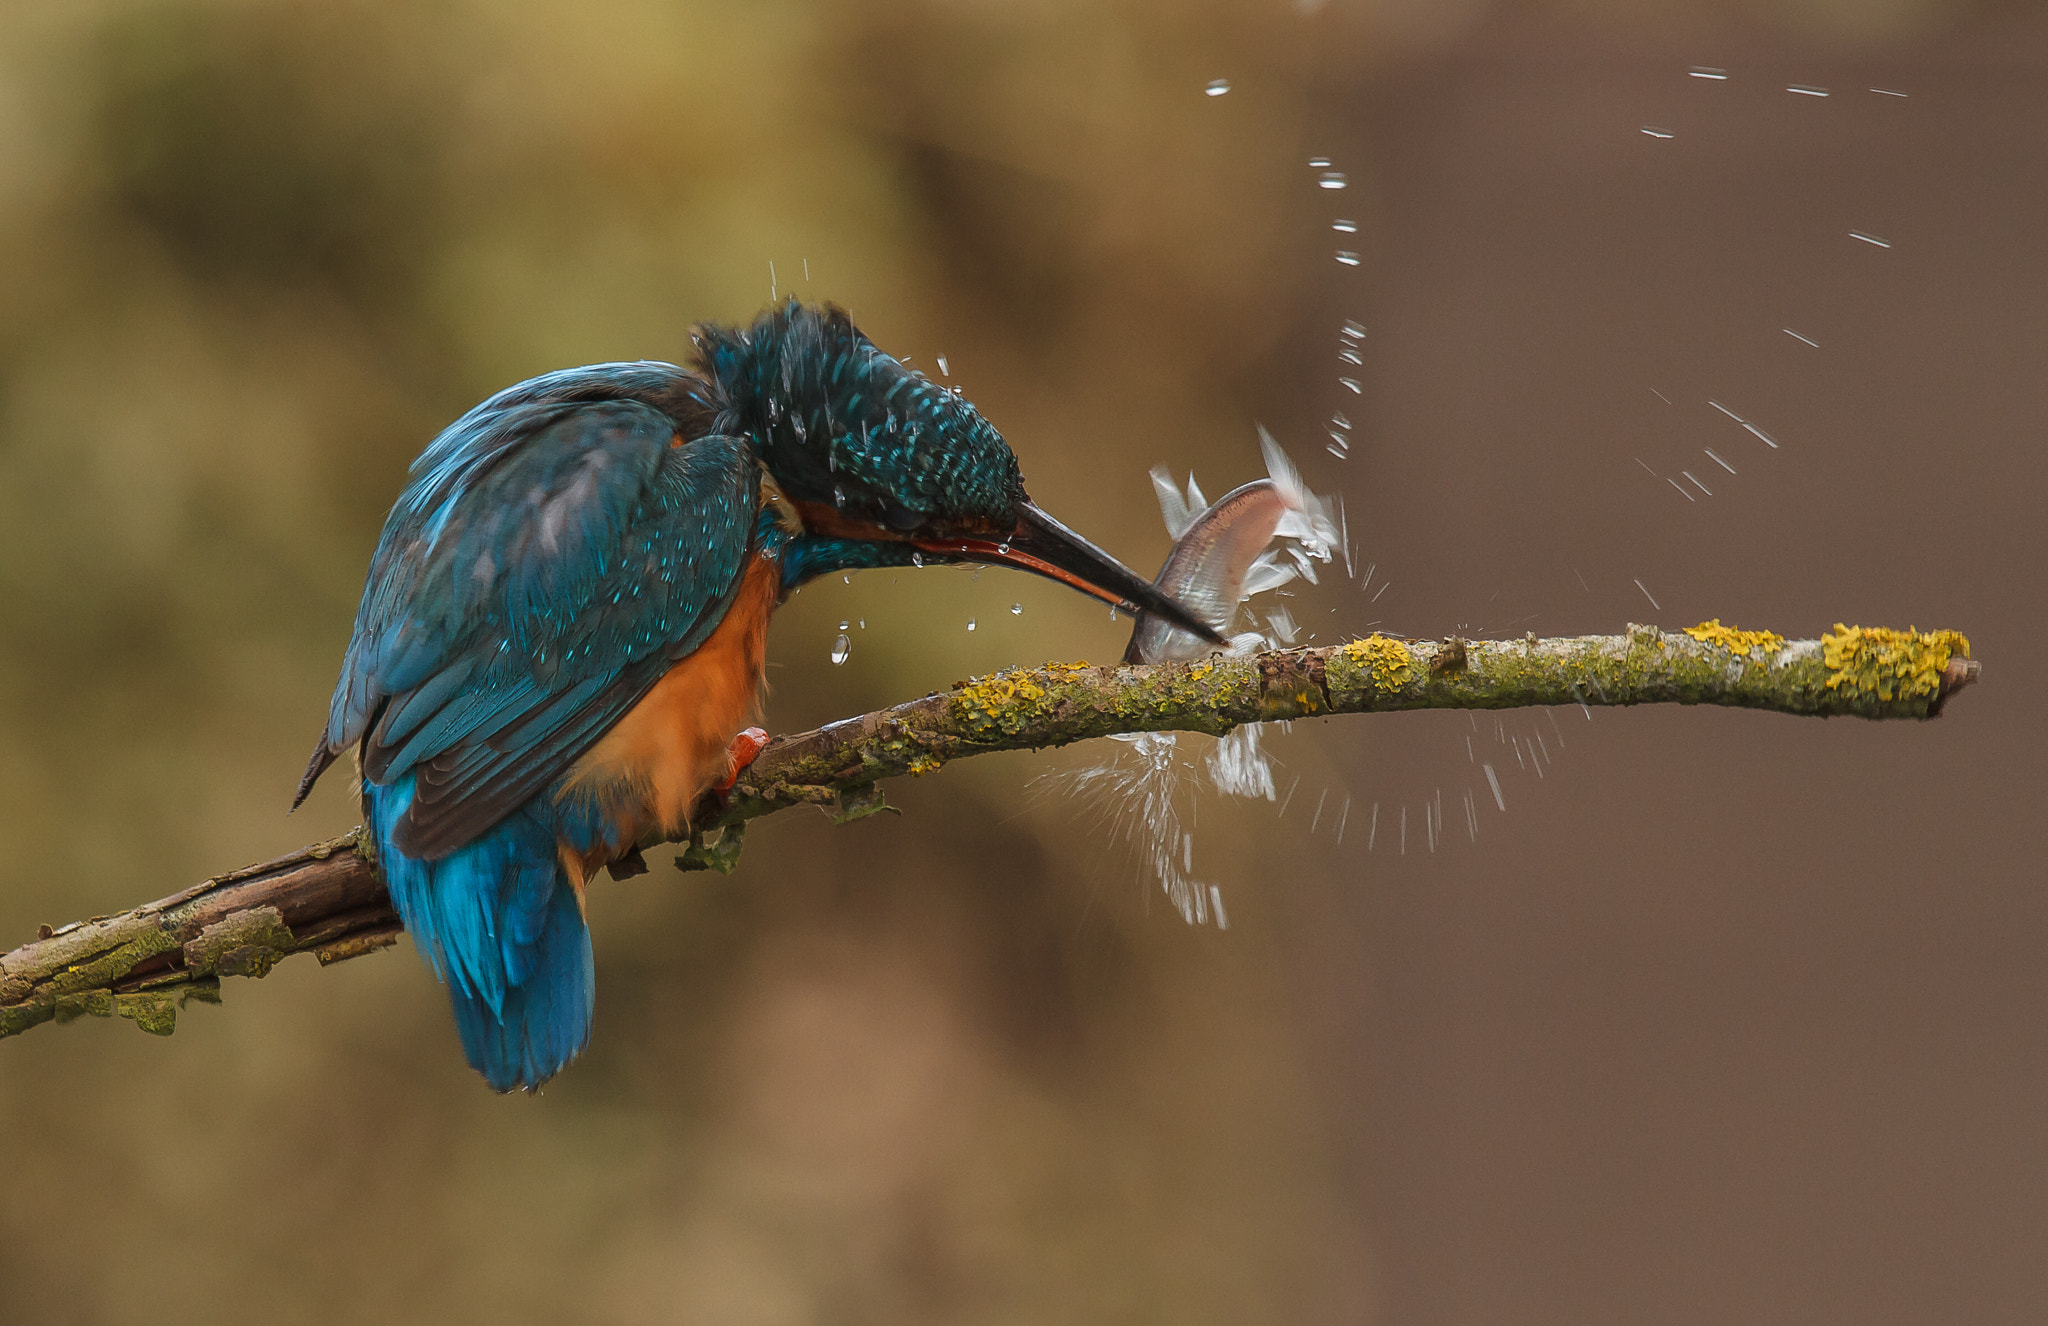 Photograph Stunning the the fish (kingfisher) by John Starkey on 500px